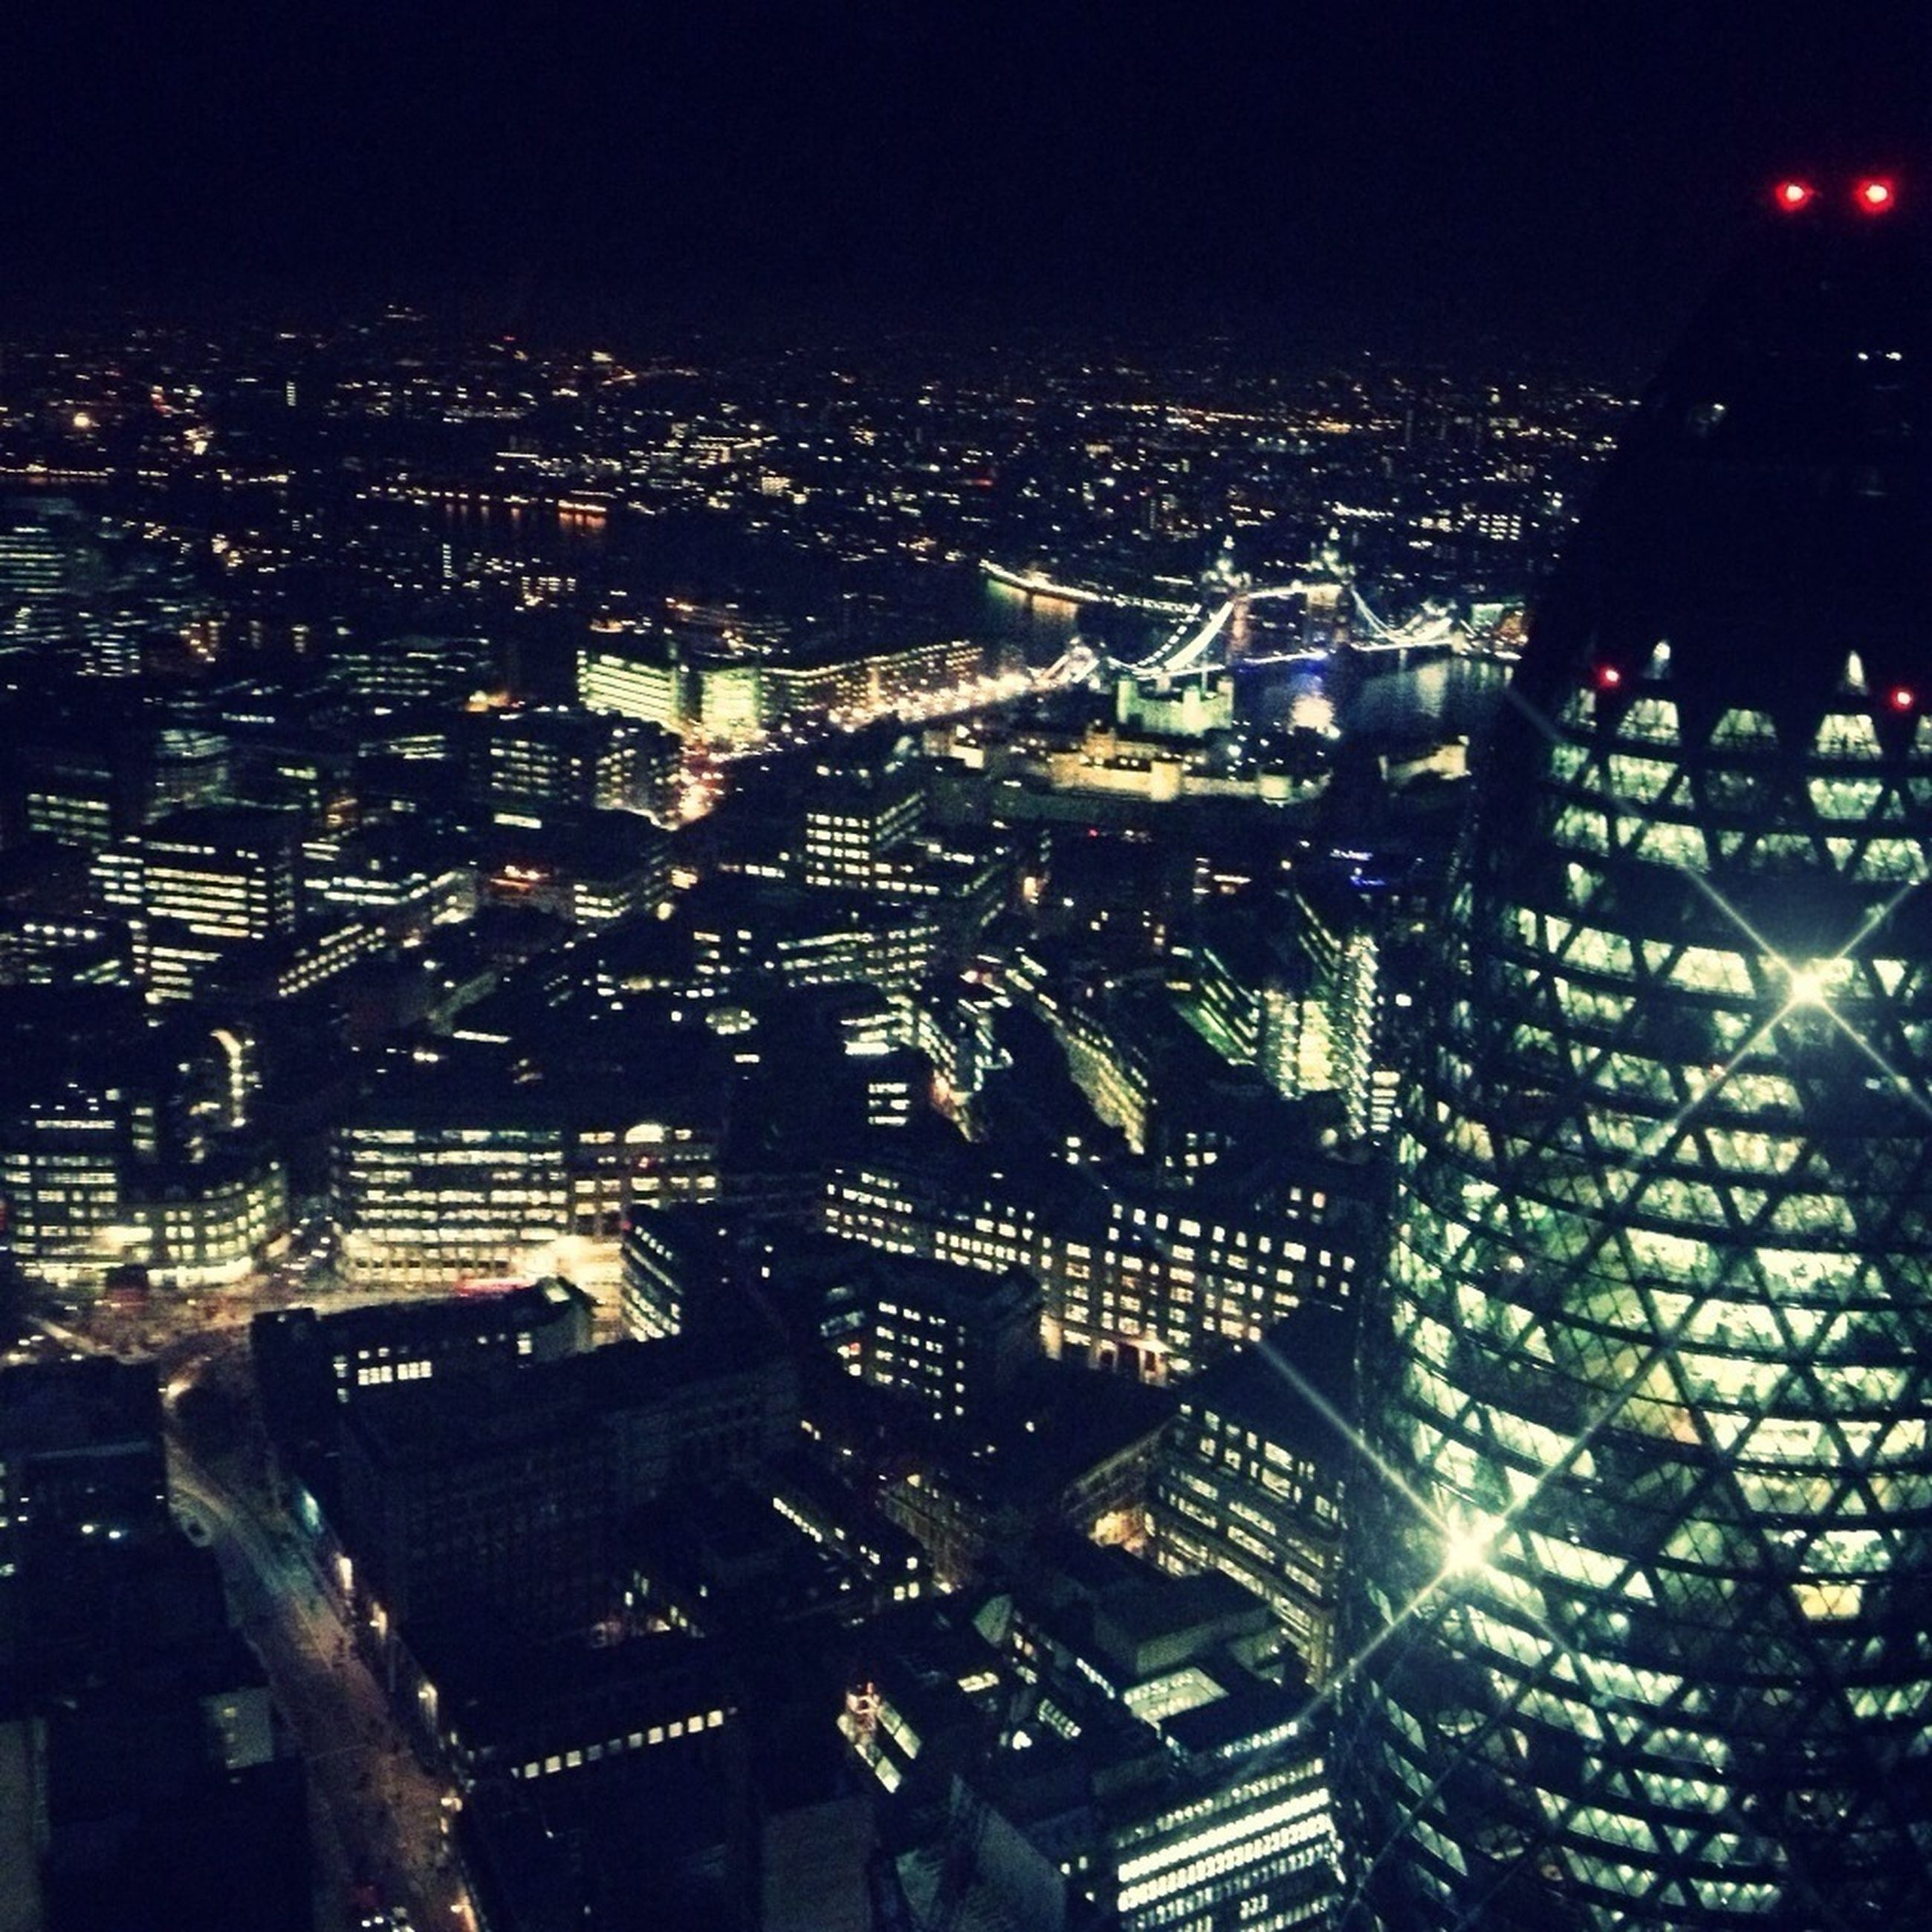 night, illuminated, city, cityscape, building exterior, architecture, built structure, crowded, high angle view, city life, skyscraper, residential district, capital cities, modern, aerial view, office building, residential building, sky, outdoors, travel destinations